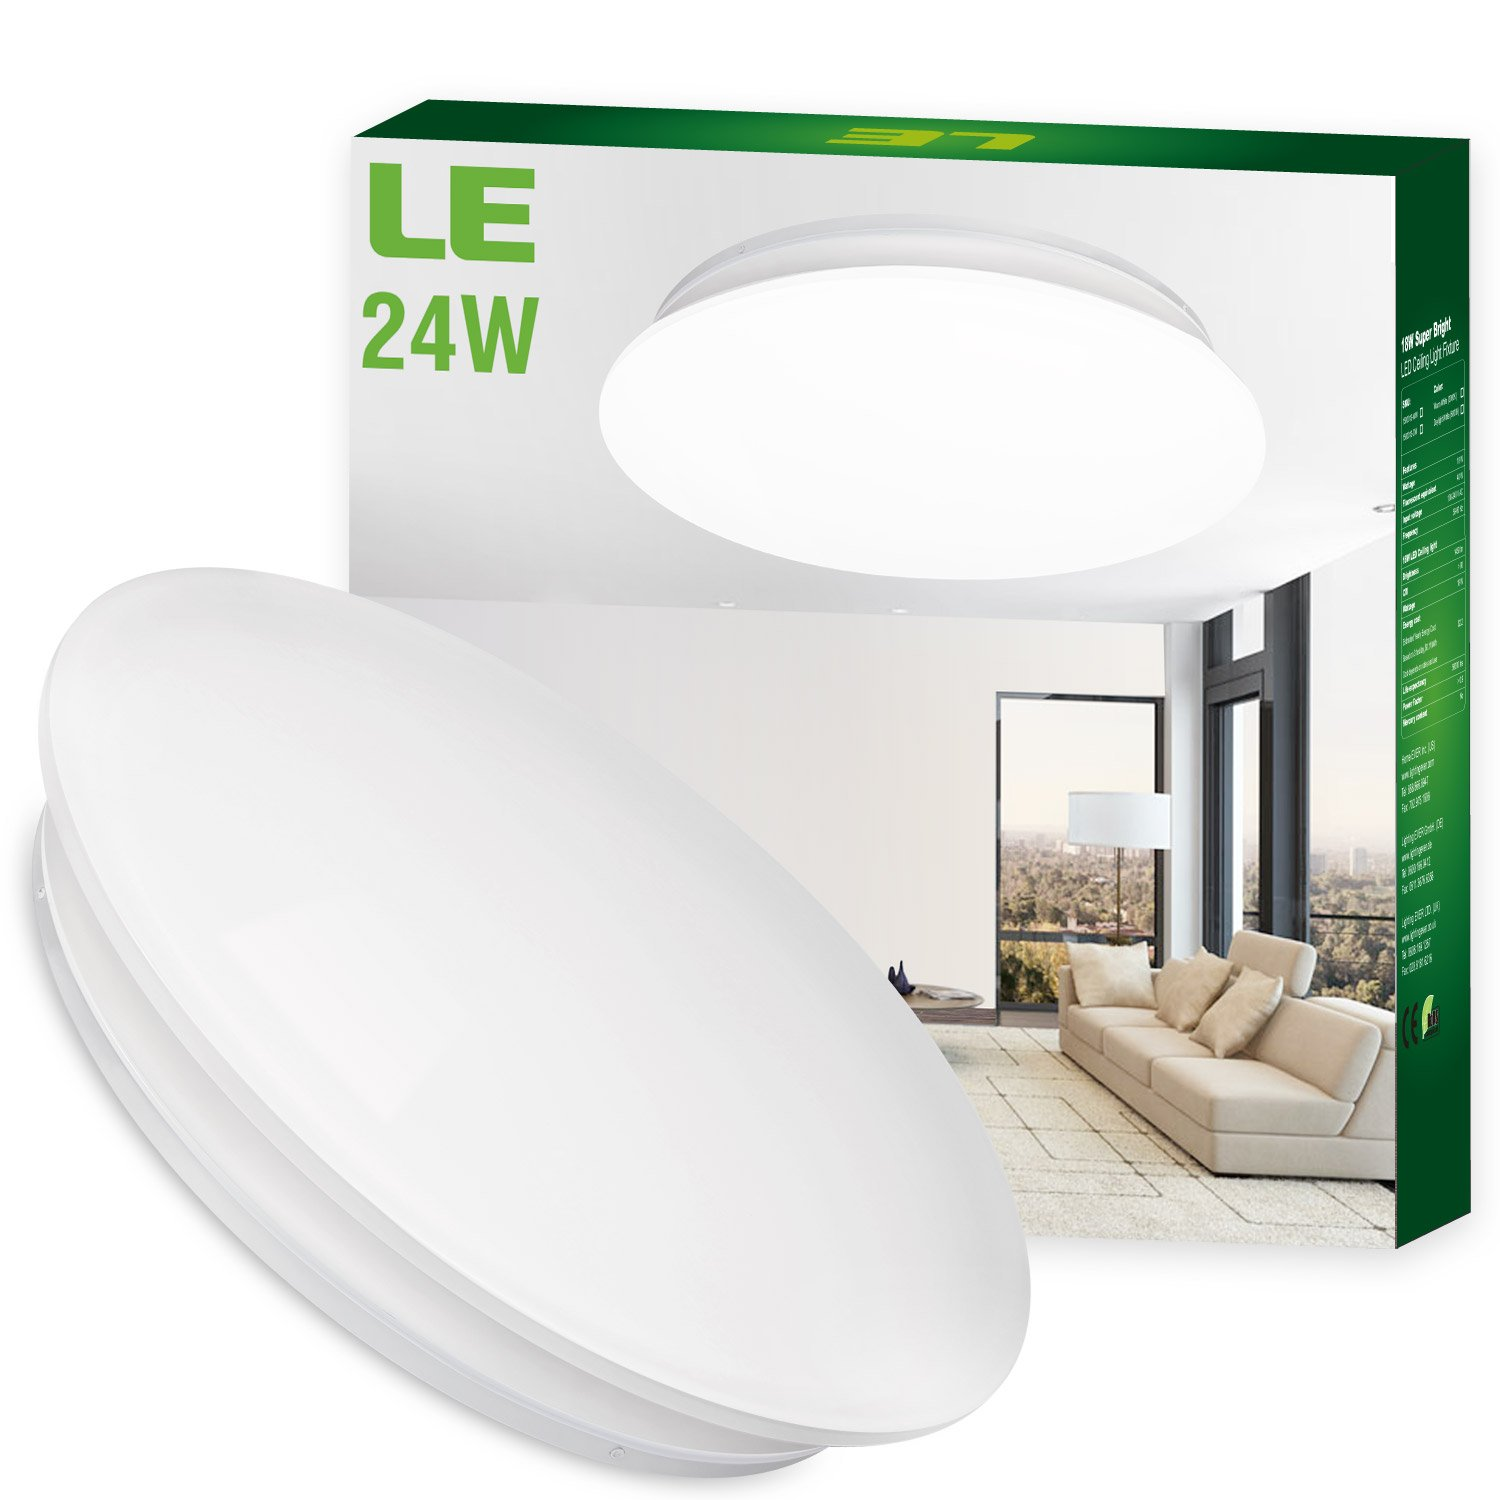 le 24w 16inch daylight white led ceiling lights 180w 50w fluorescent bulb equivalent 2000lm 6000k ceiling light fixture ceiling